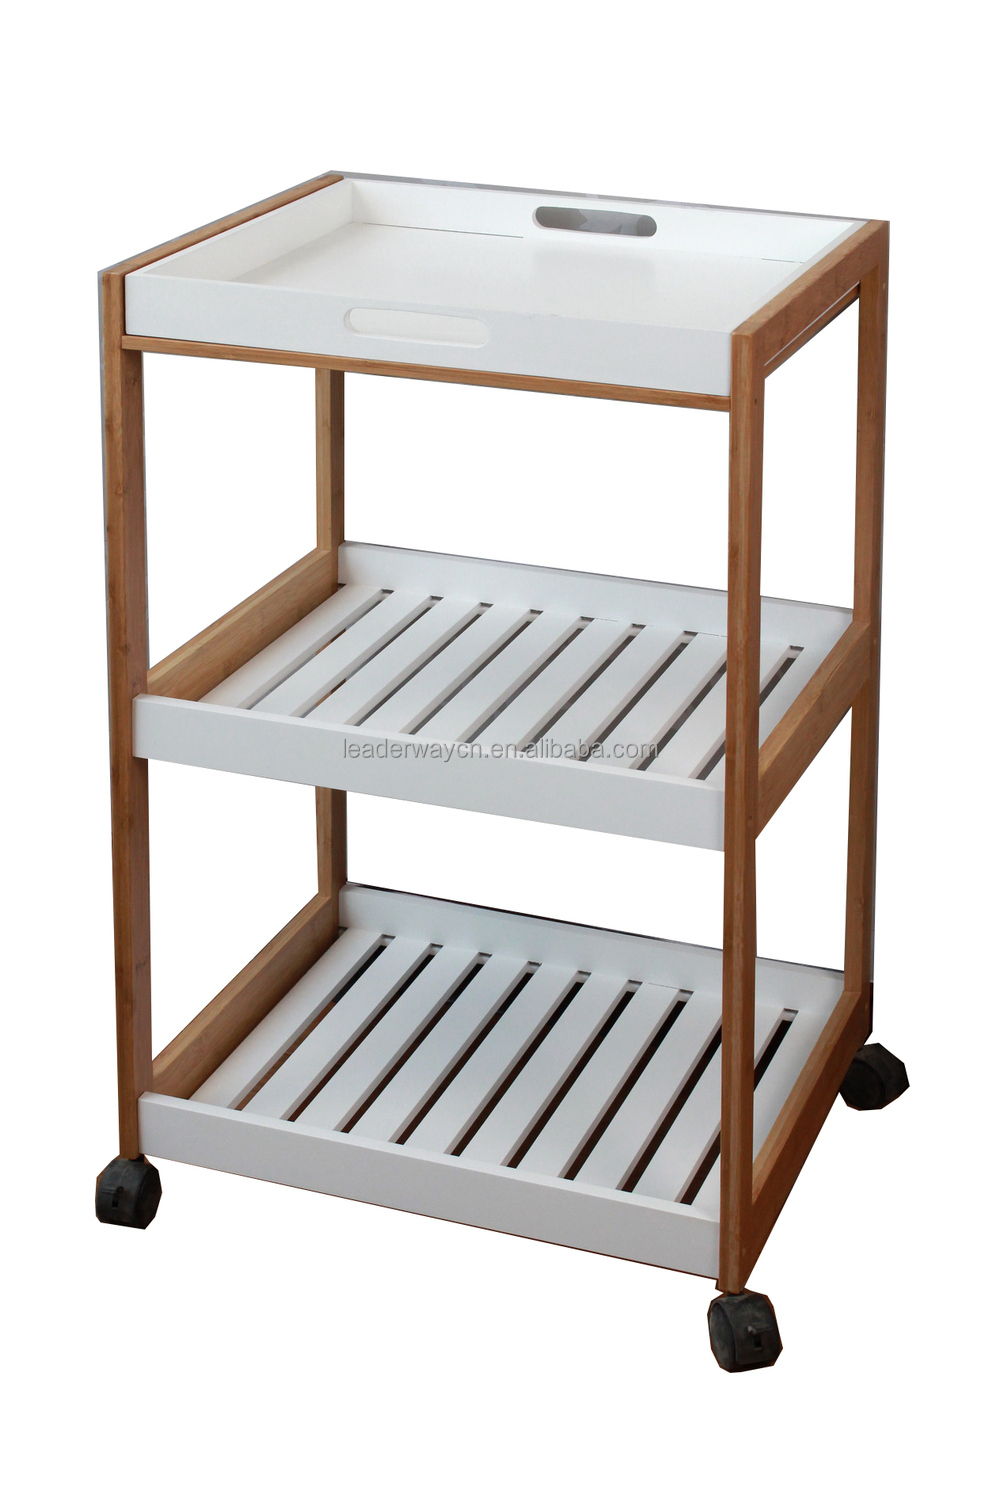 designer kitchen trolley steel kitchen trolley designs 827